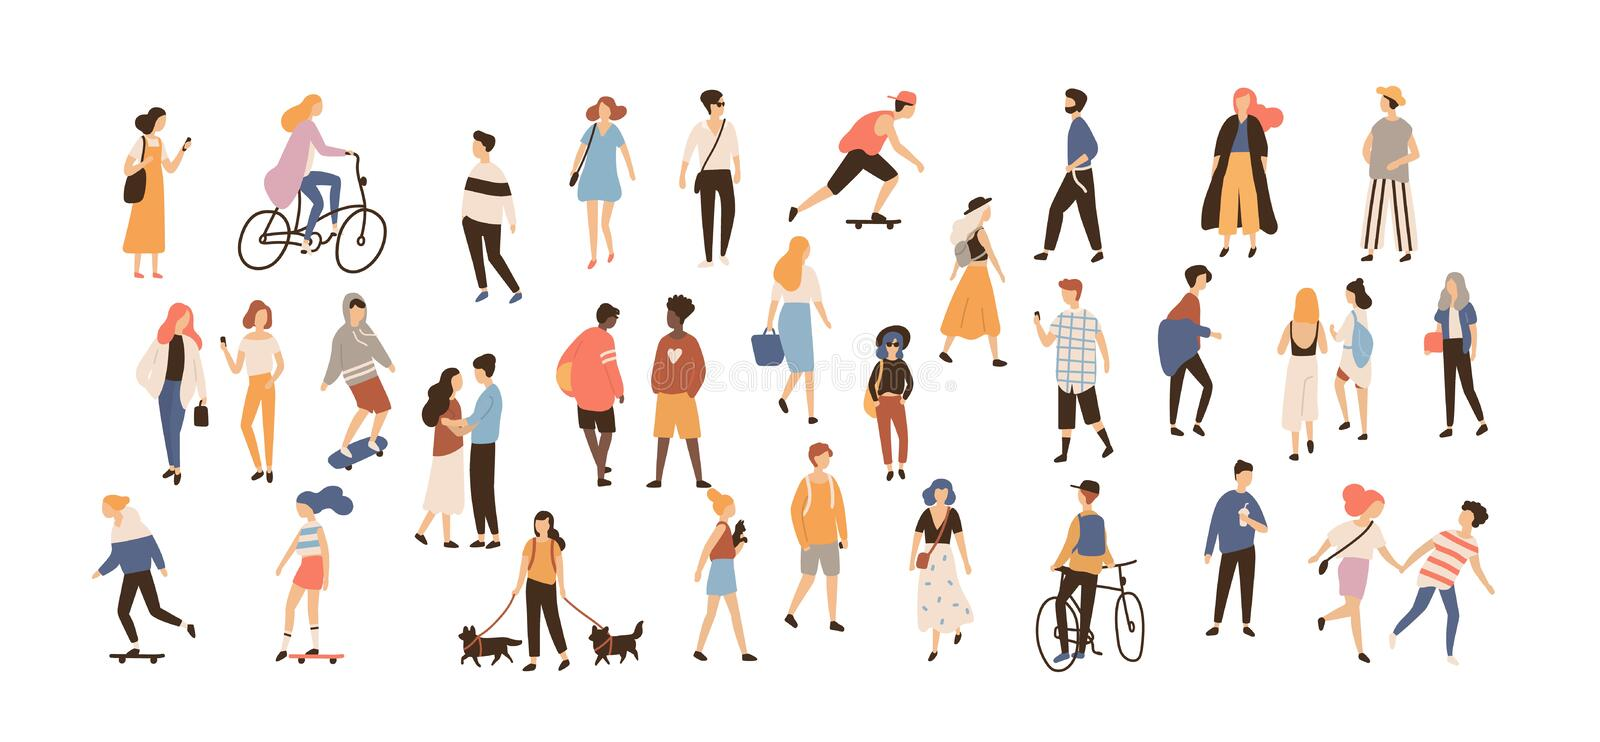 Crowd of people performing summer outdoor activities - walking dogs, riding bicycle, skateboarding. Group of male and royalty free illustration